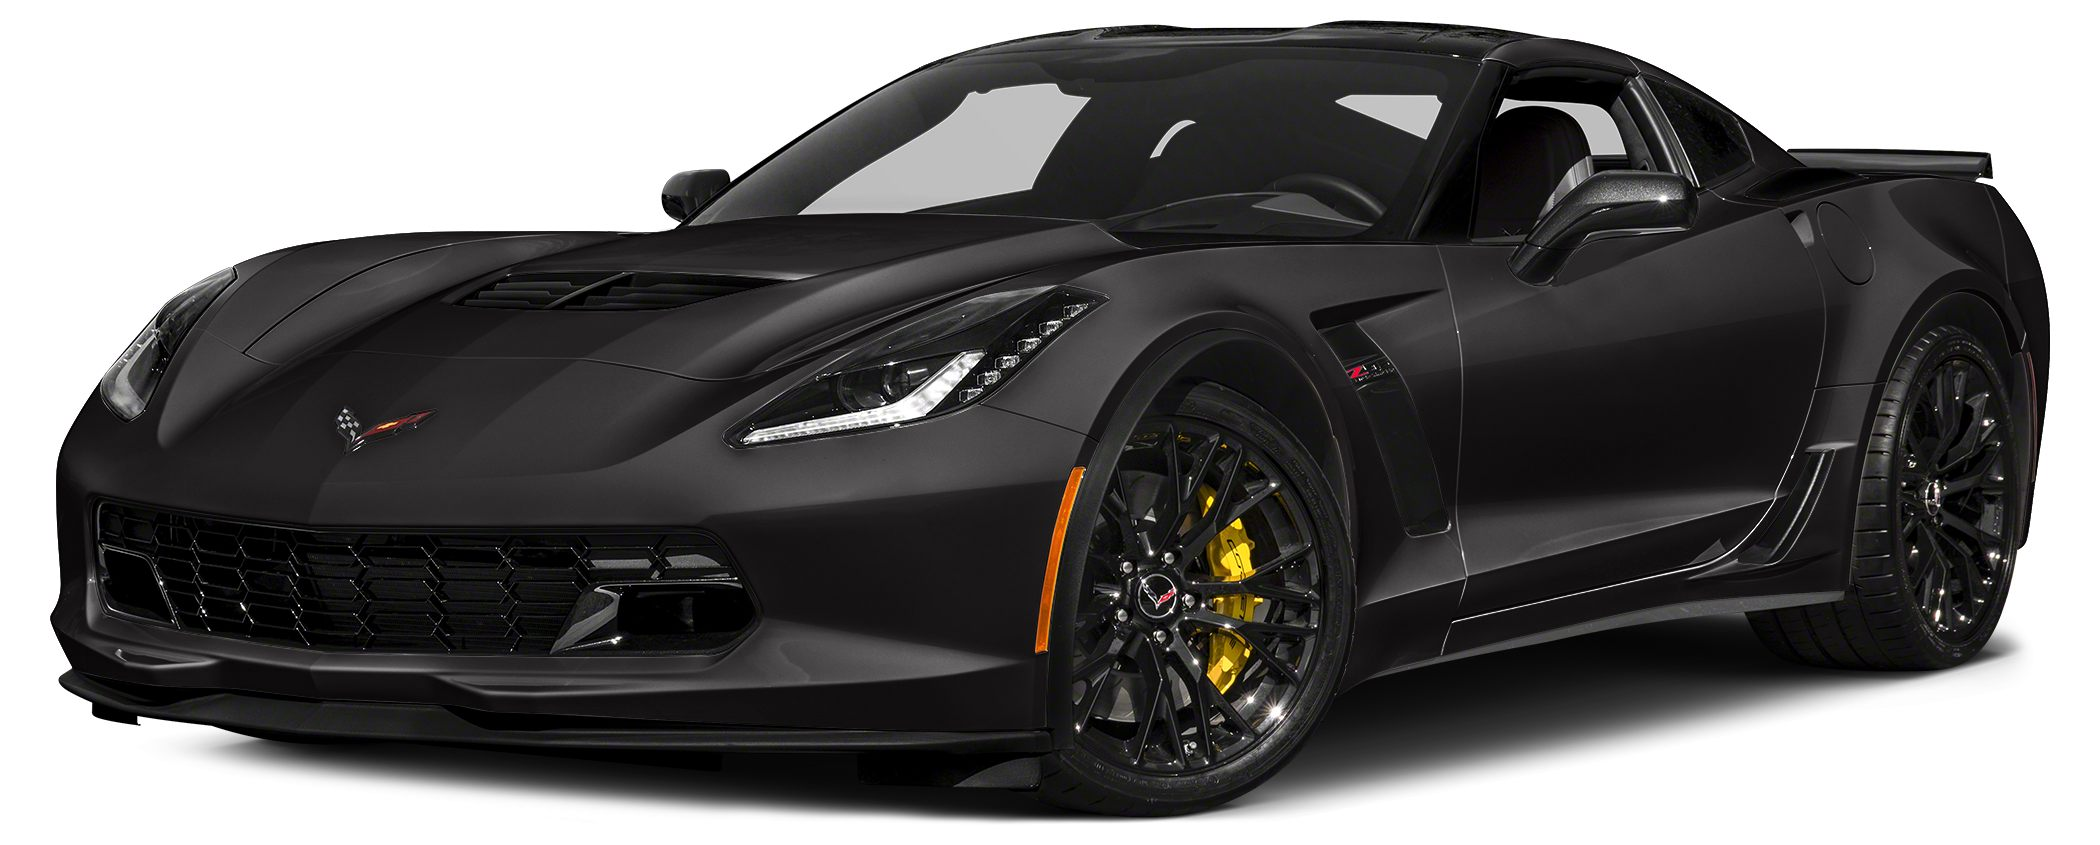 2017 Chevrolet Corvette Z06 With its sculpted athletic exterior and driver-oriented cockpit the 2